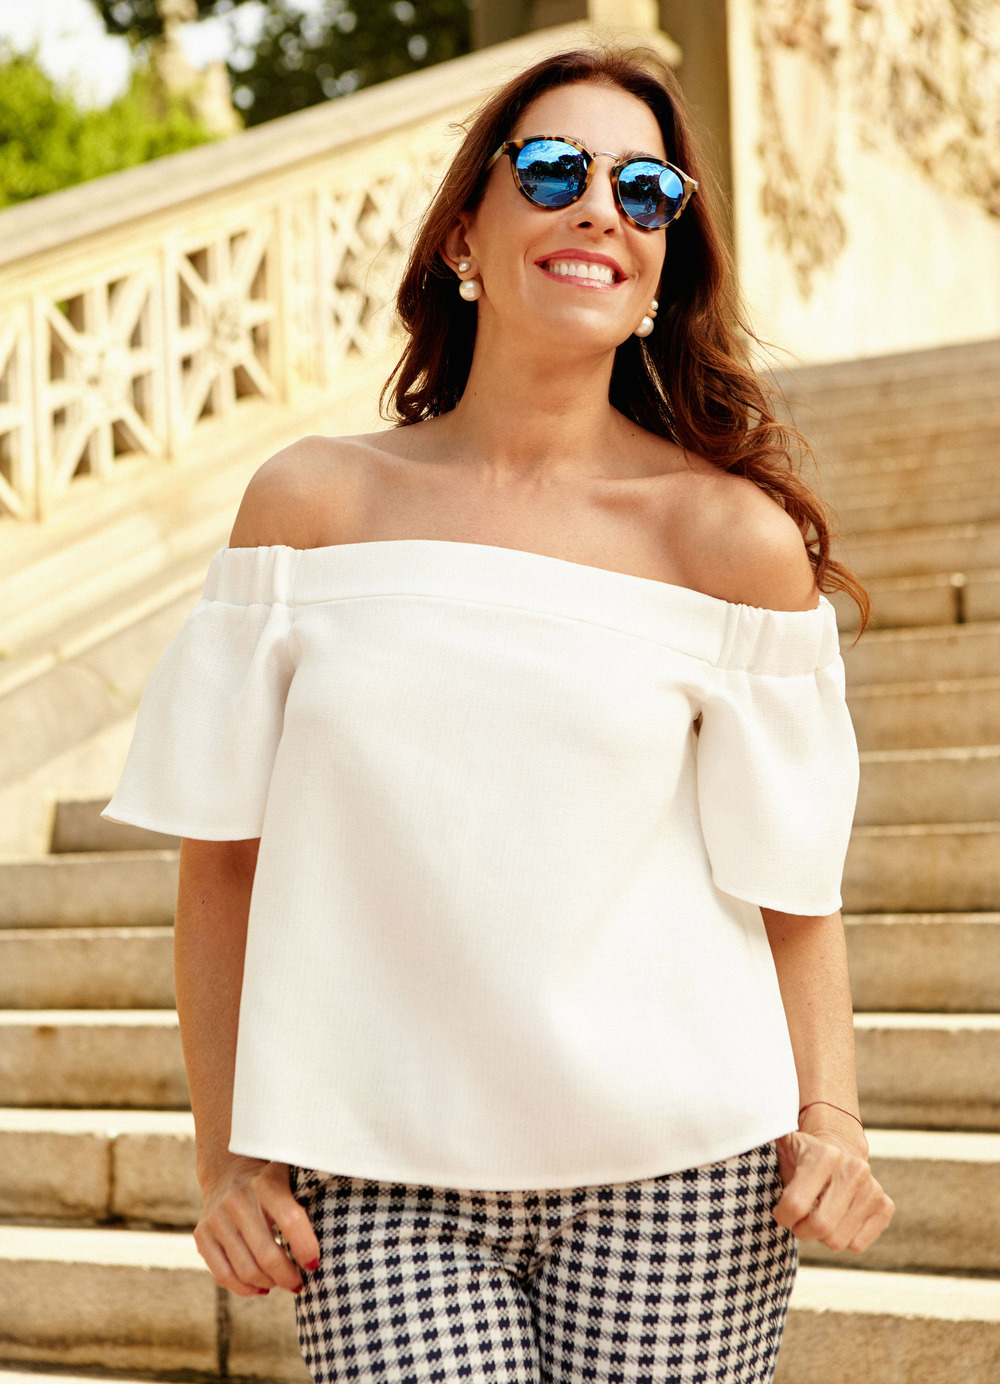 KIKA ROCHA MODA WHITE OFF SHOULDER SHIRT.jpg